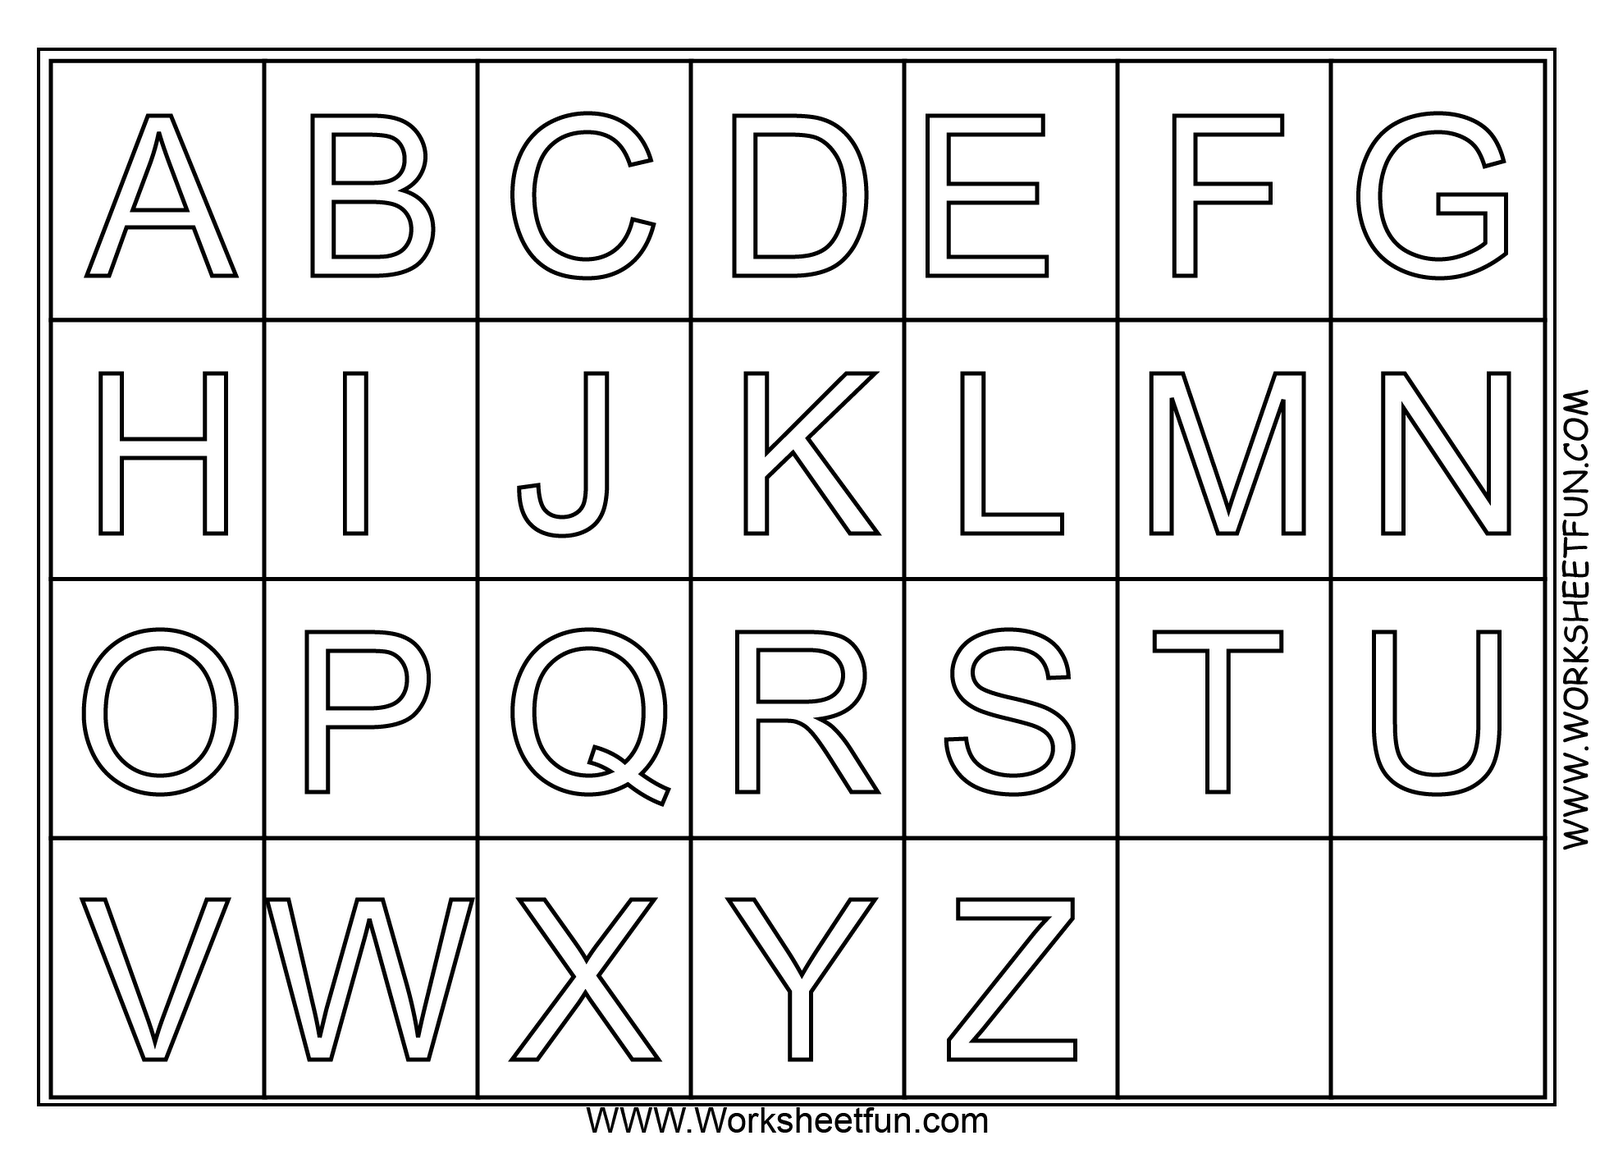 Worksheets Preschool Alphabet Worksheet a z alphabet coloring pages download and print for free pre k to worksheet letters worksheets preschool